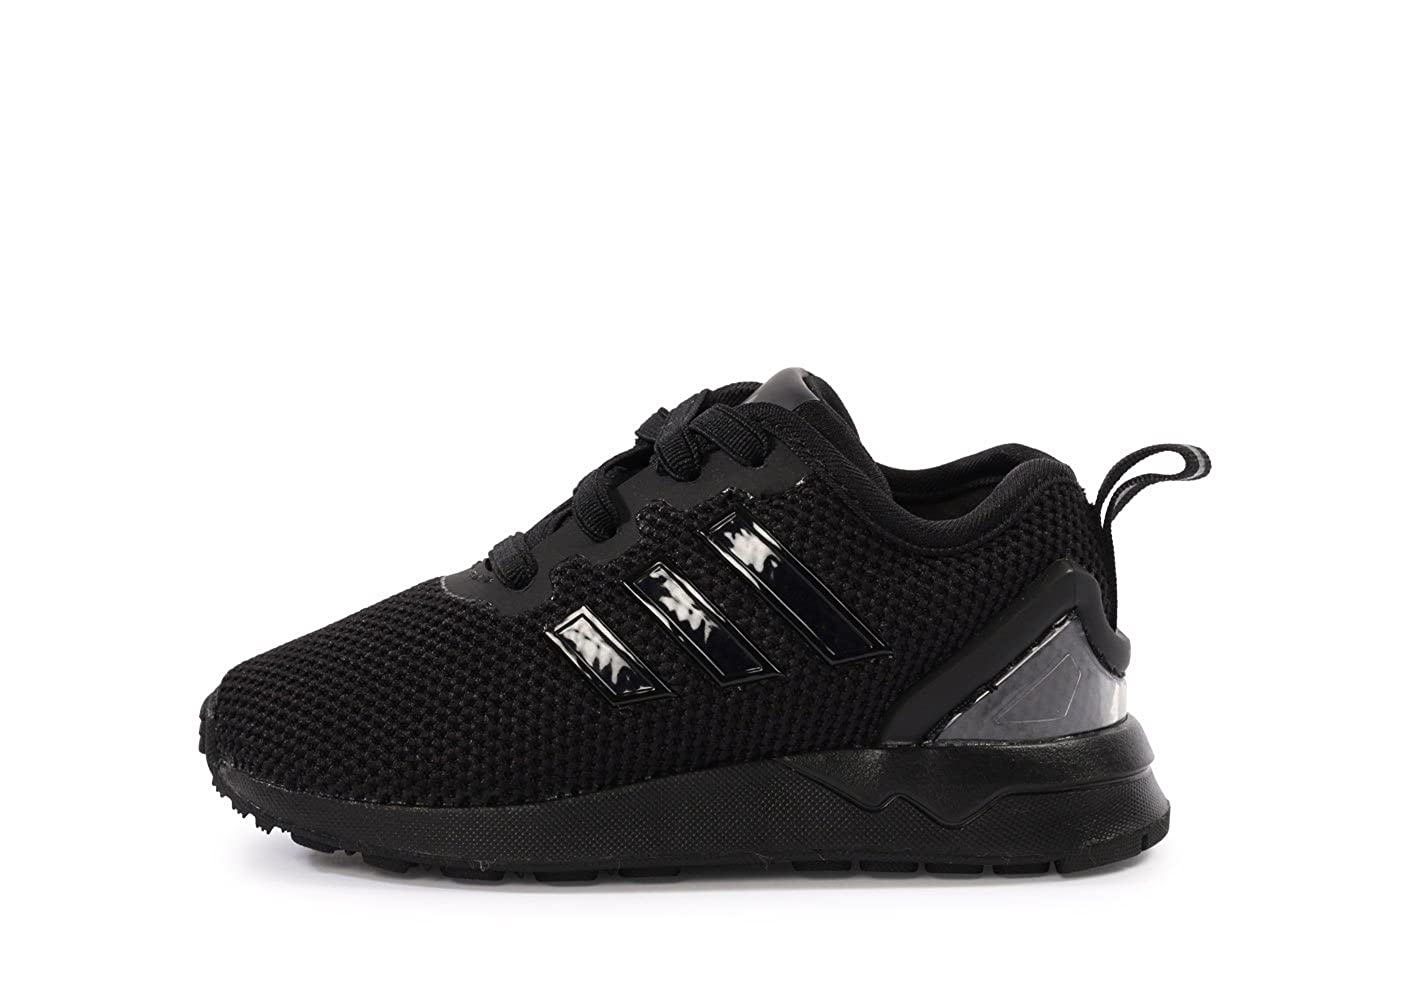 6b03ad28b0 adidas Boys Originals Infant Boys ZX Flux ADV Trainers in Black - 6.5  Infant: Amazon.co.uk: Shoes & Bags